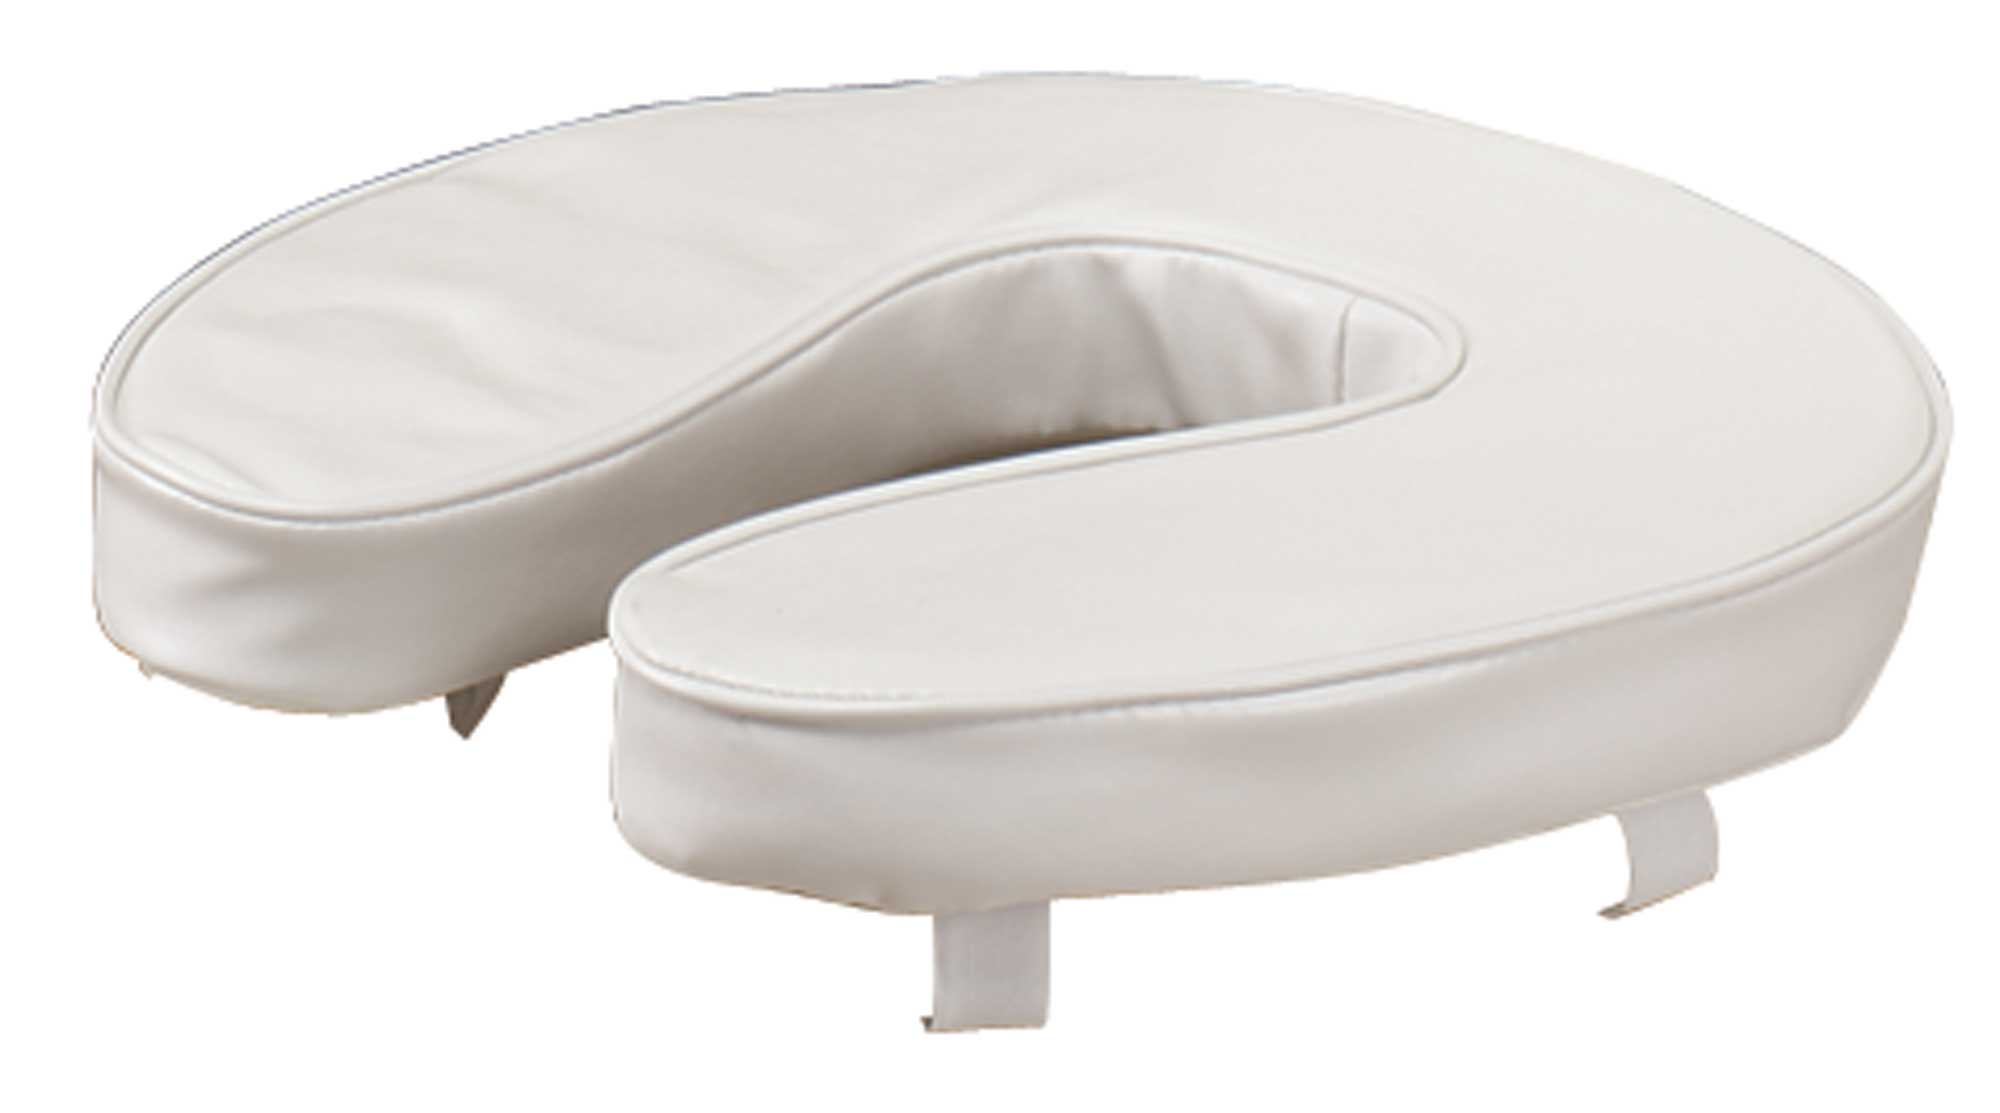 Cushioned Toilet Seats | Memory Foam Toilet Seat | Cushioned Seats